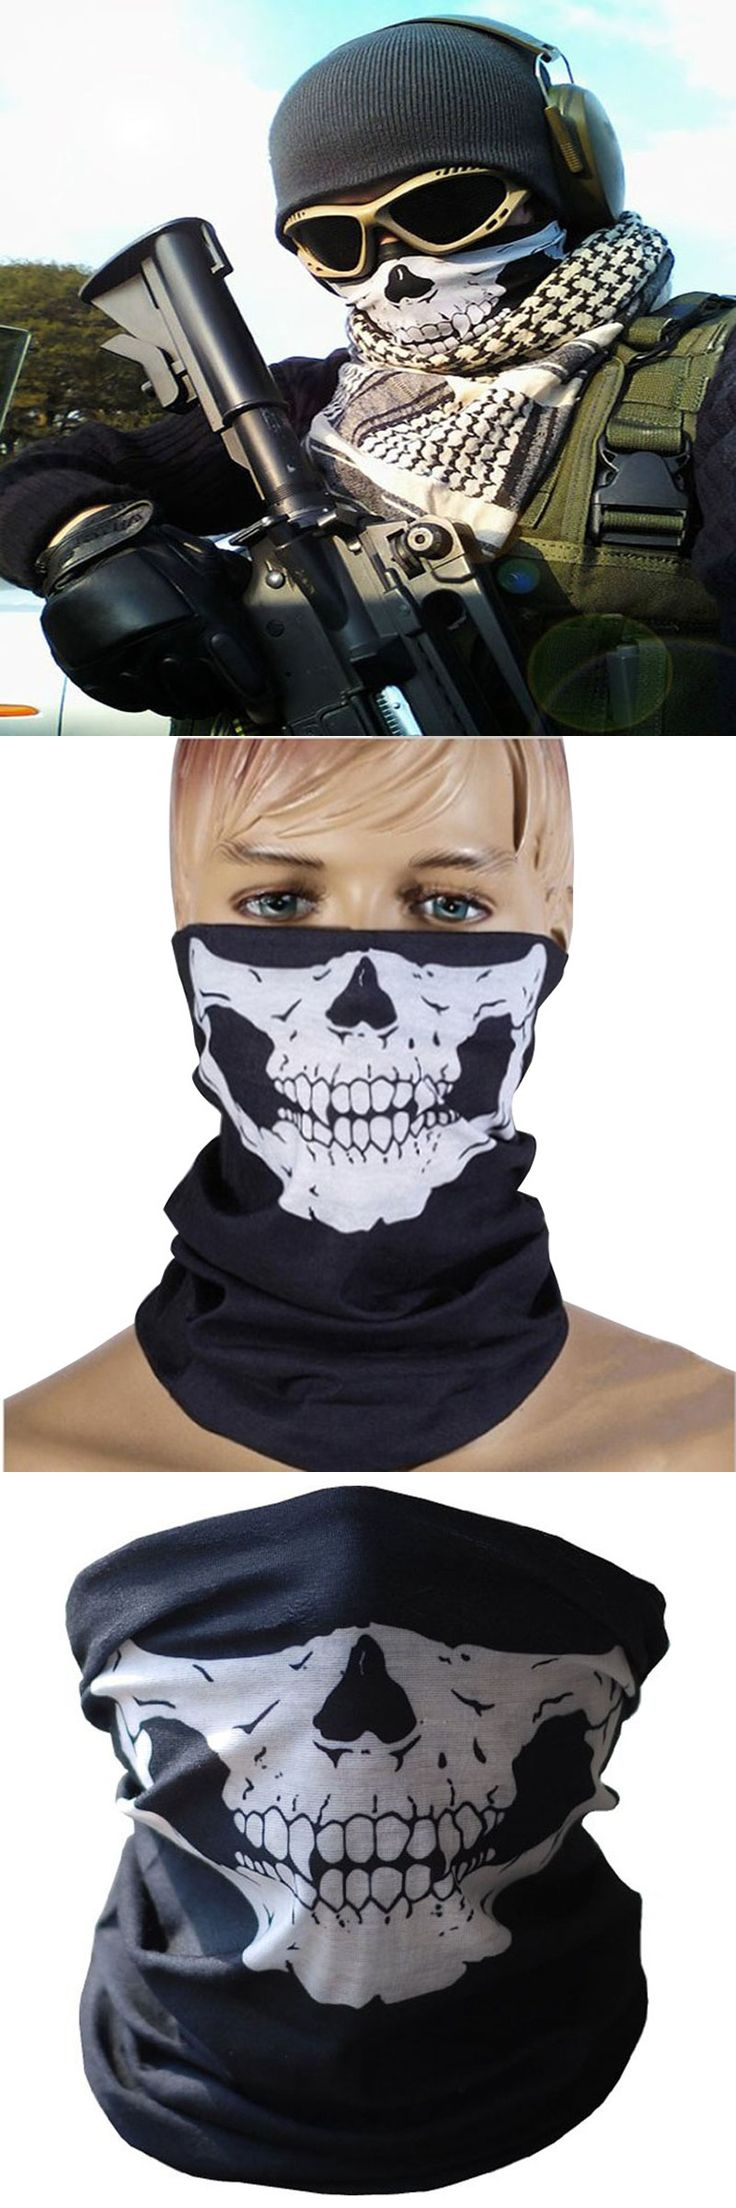 2017 Fashion Men Ghost Scarf Black Skull Half Face Skeleton Motorcycle Scary Mask for horror CS Party Halloween Mask Gift